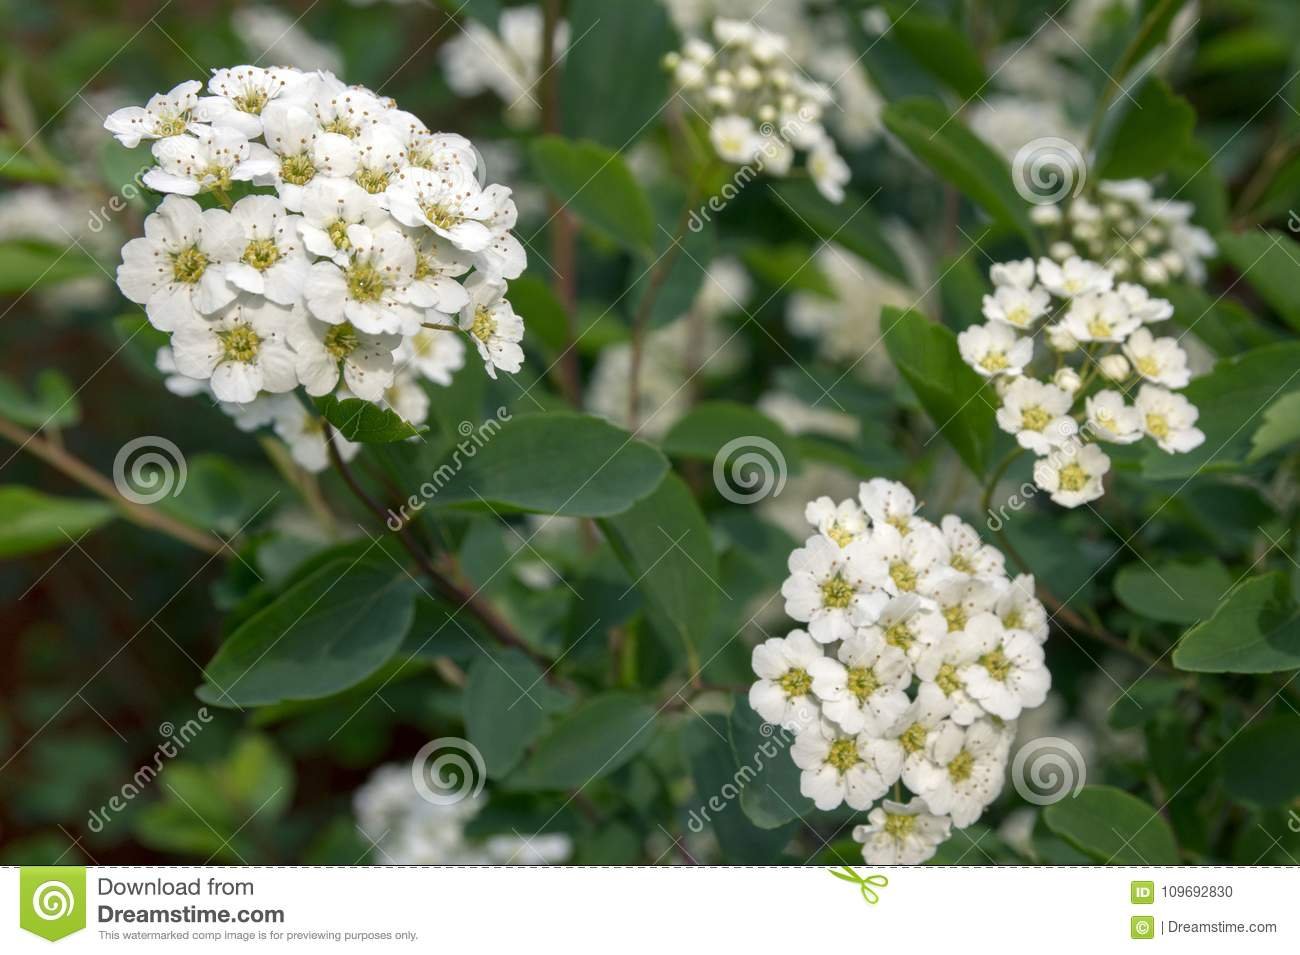 Spiraea Cantoniensis In Bloom White Flowers Stock Photo Image Of